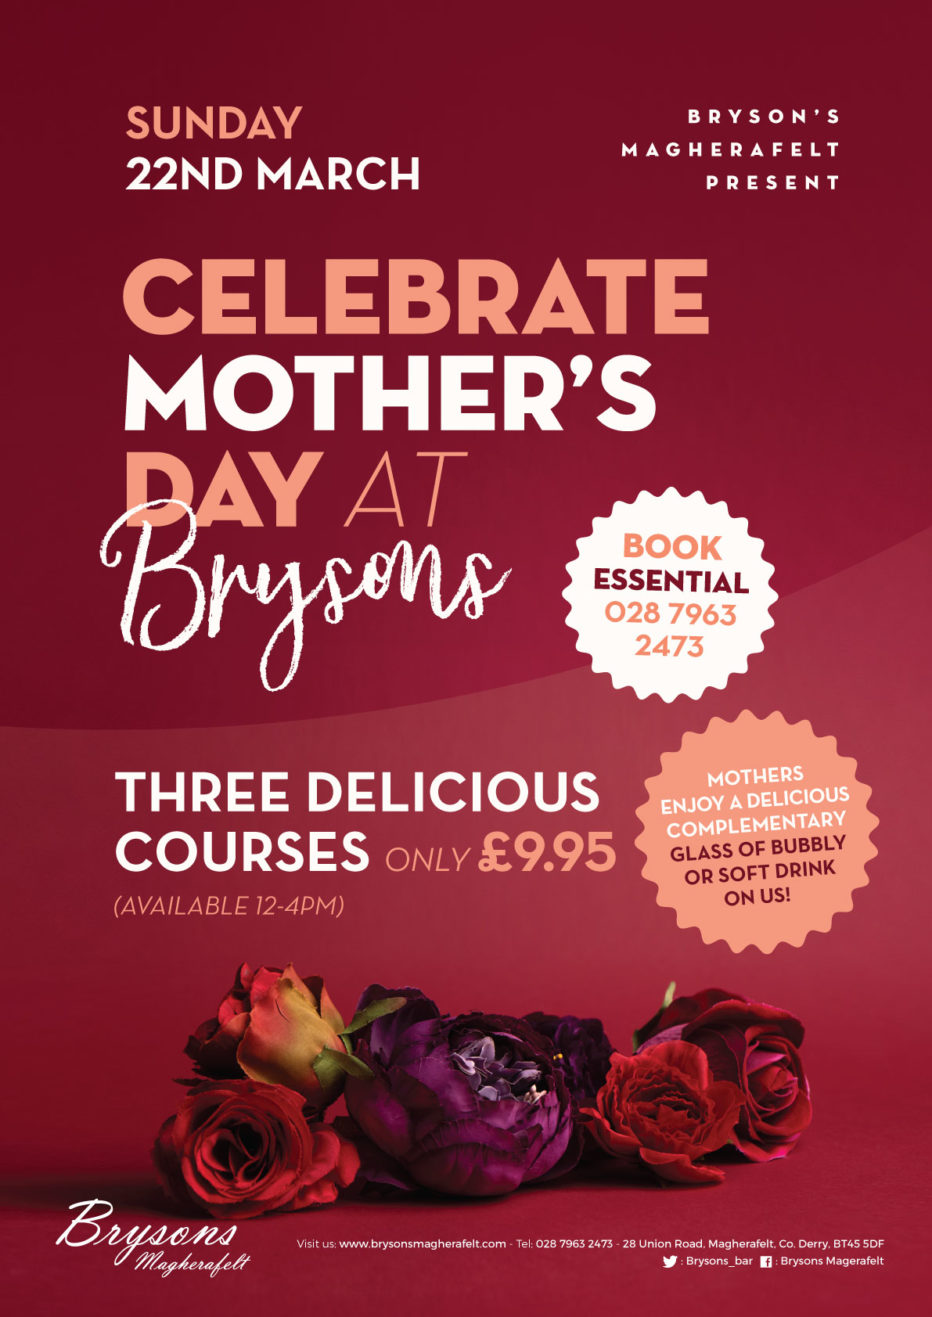 Mothers day at Bryson's